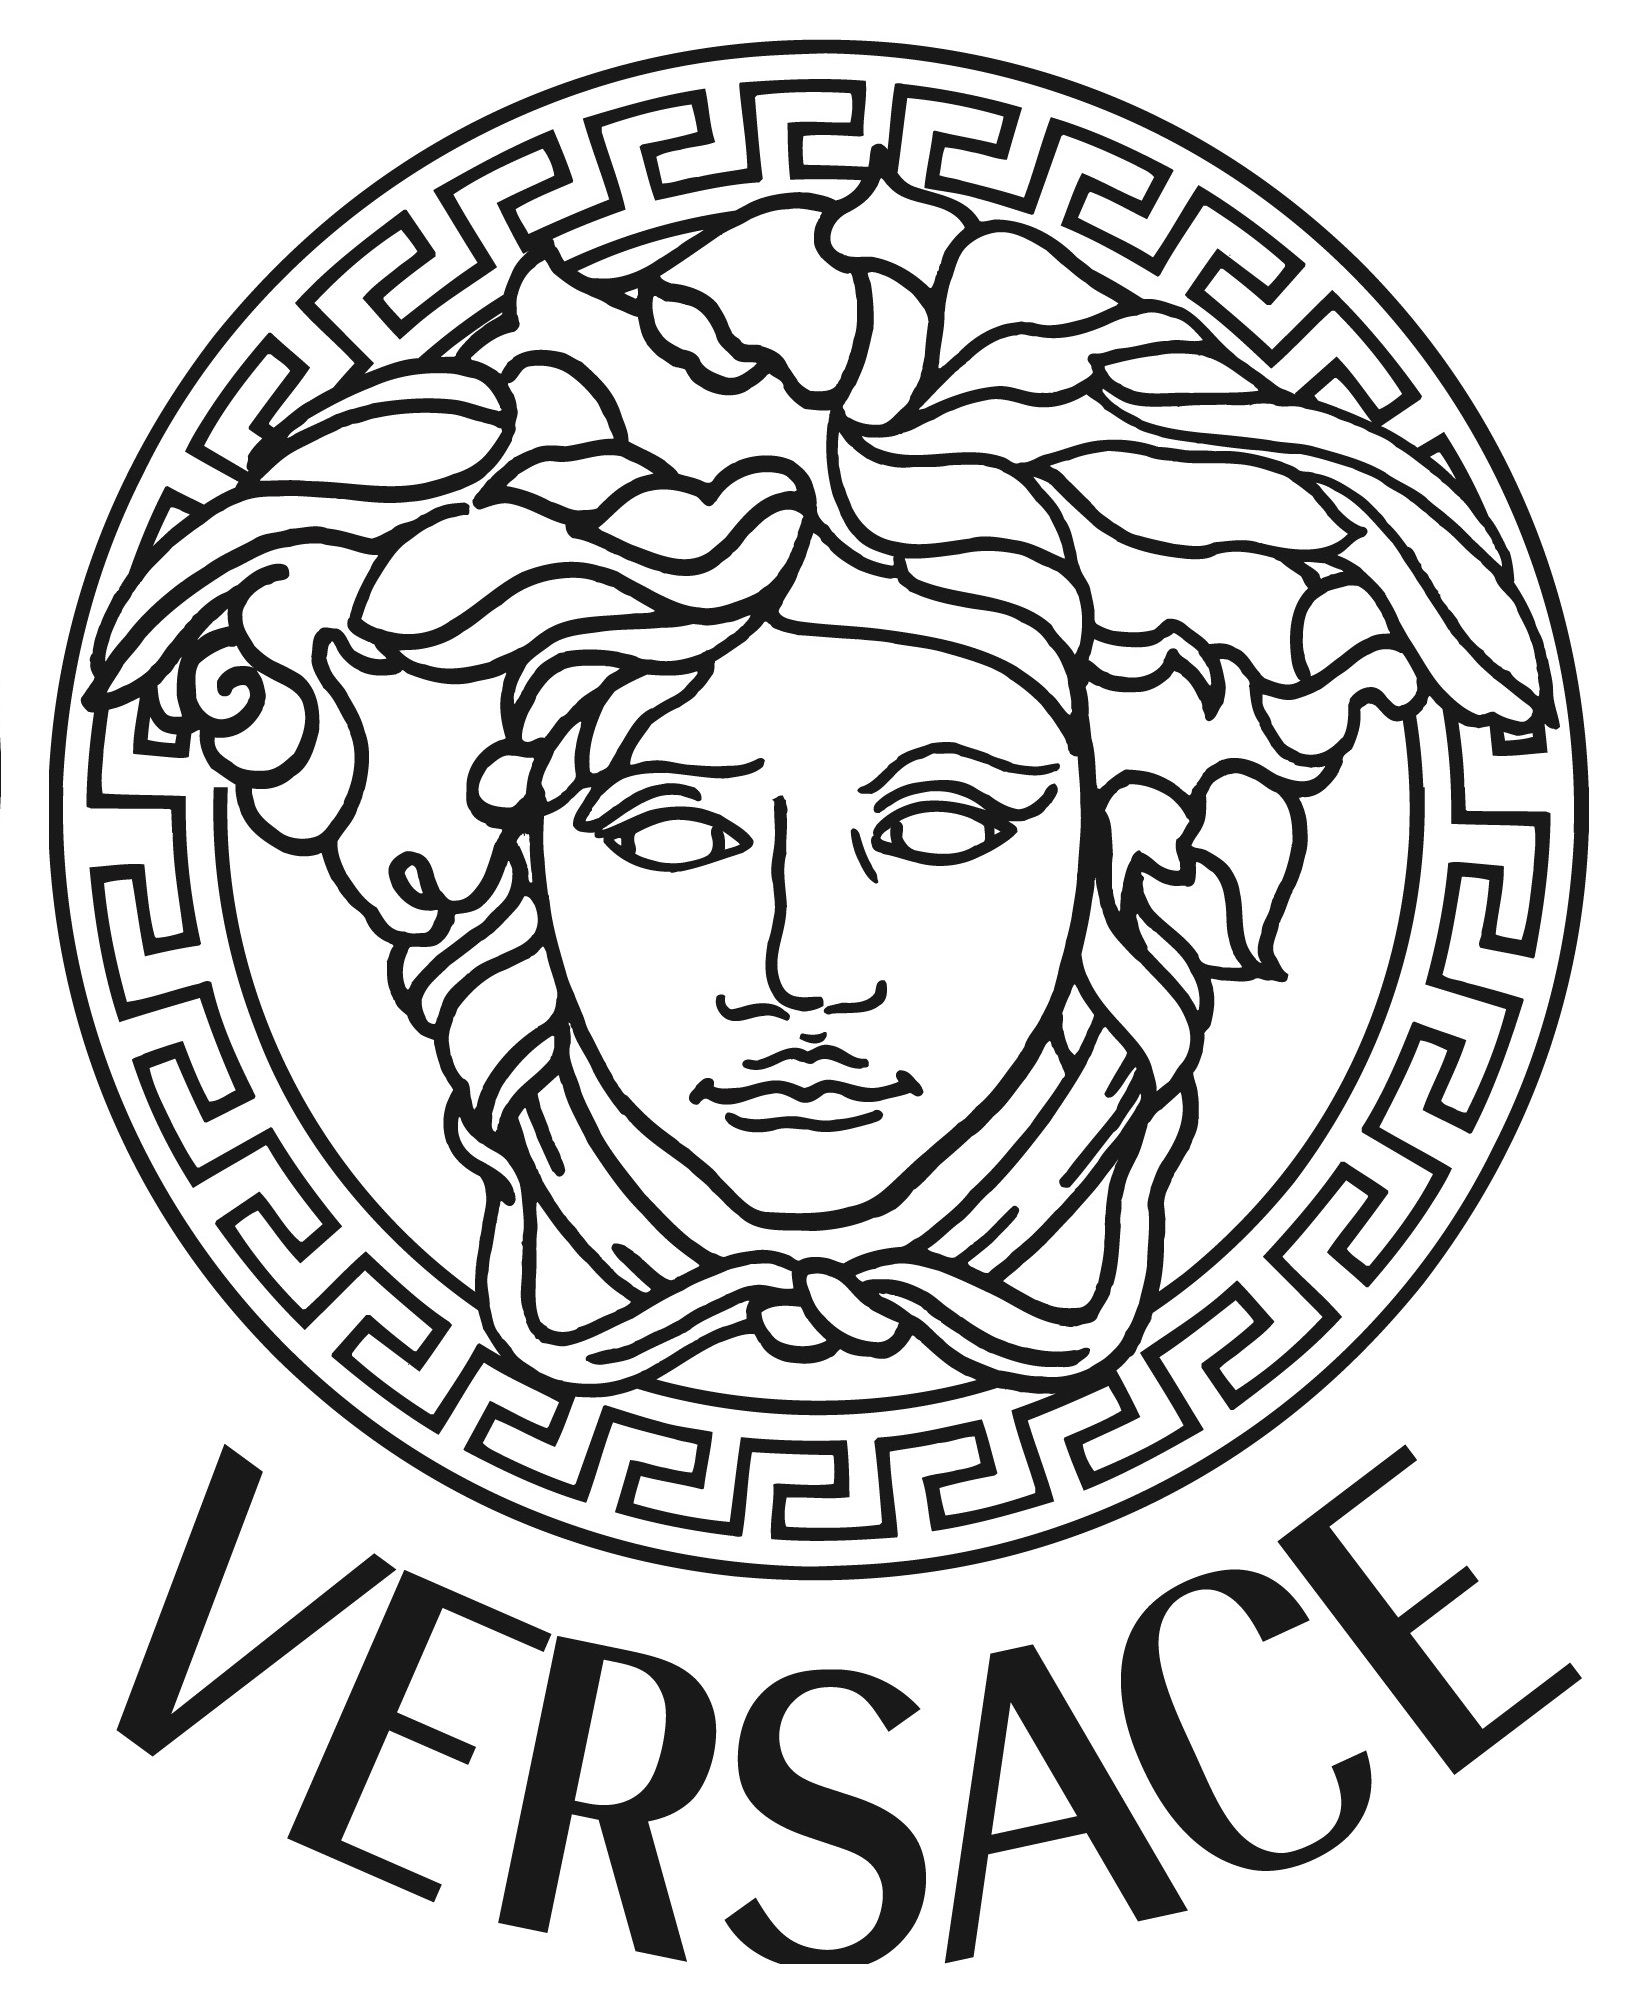 versace medusa gold vinyl sticker decal 3 sizes bumper wall